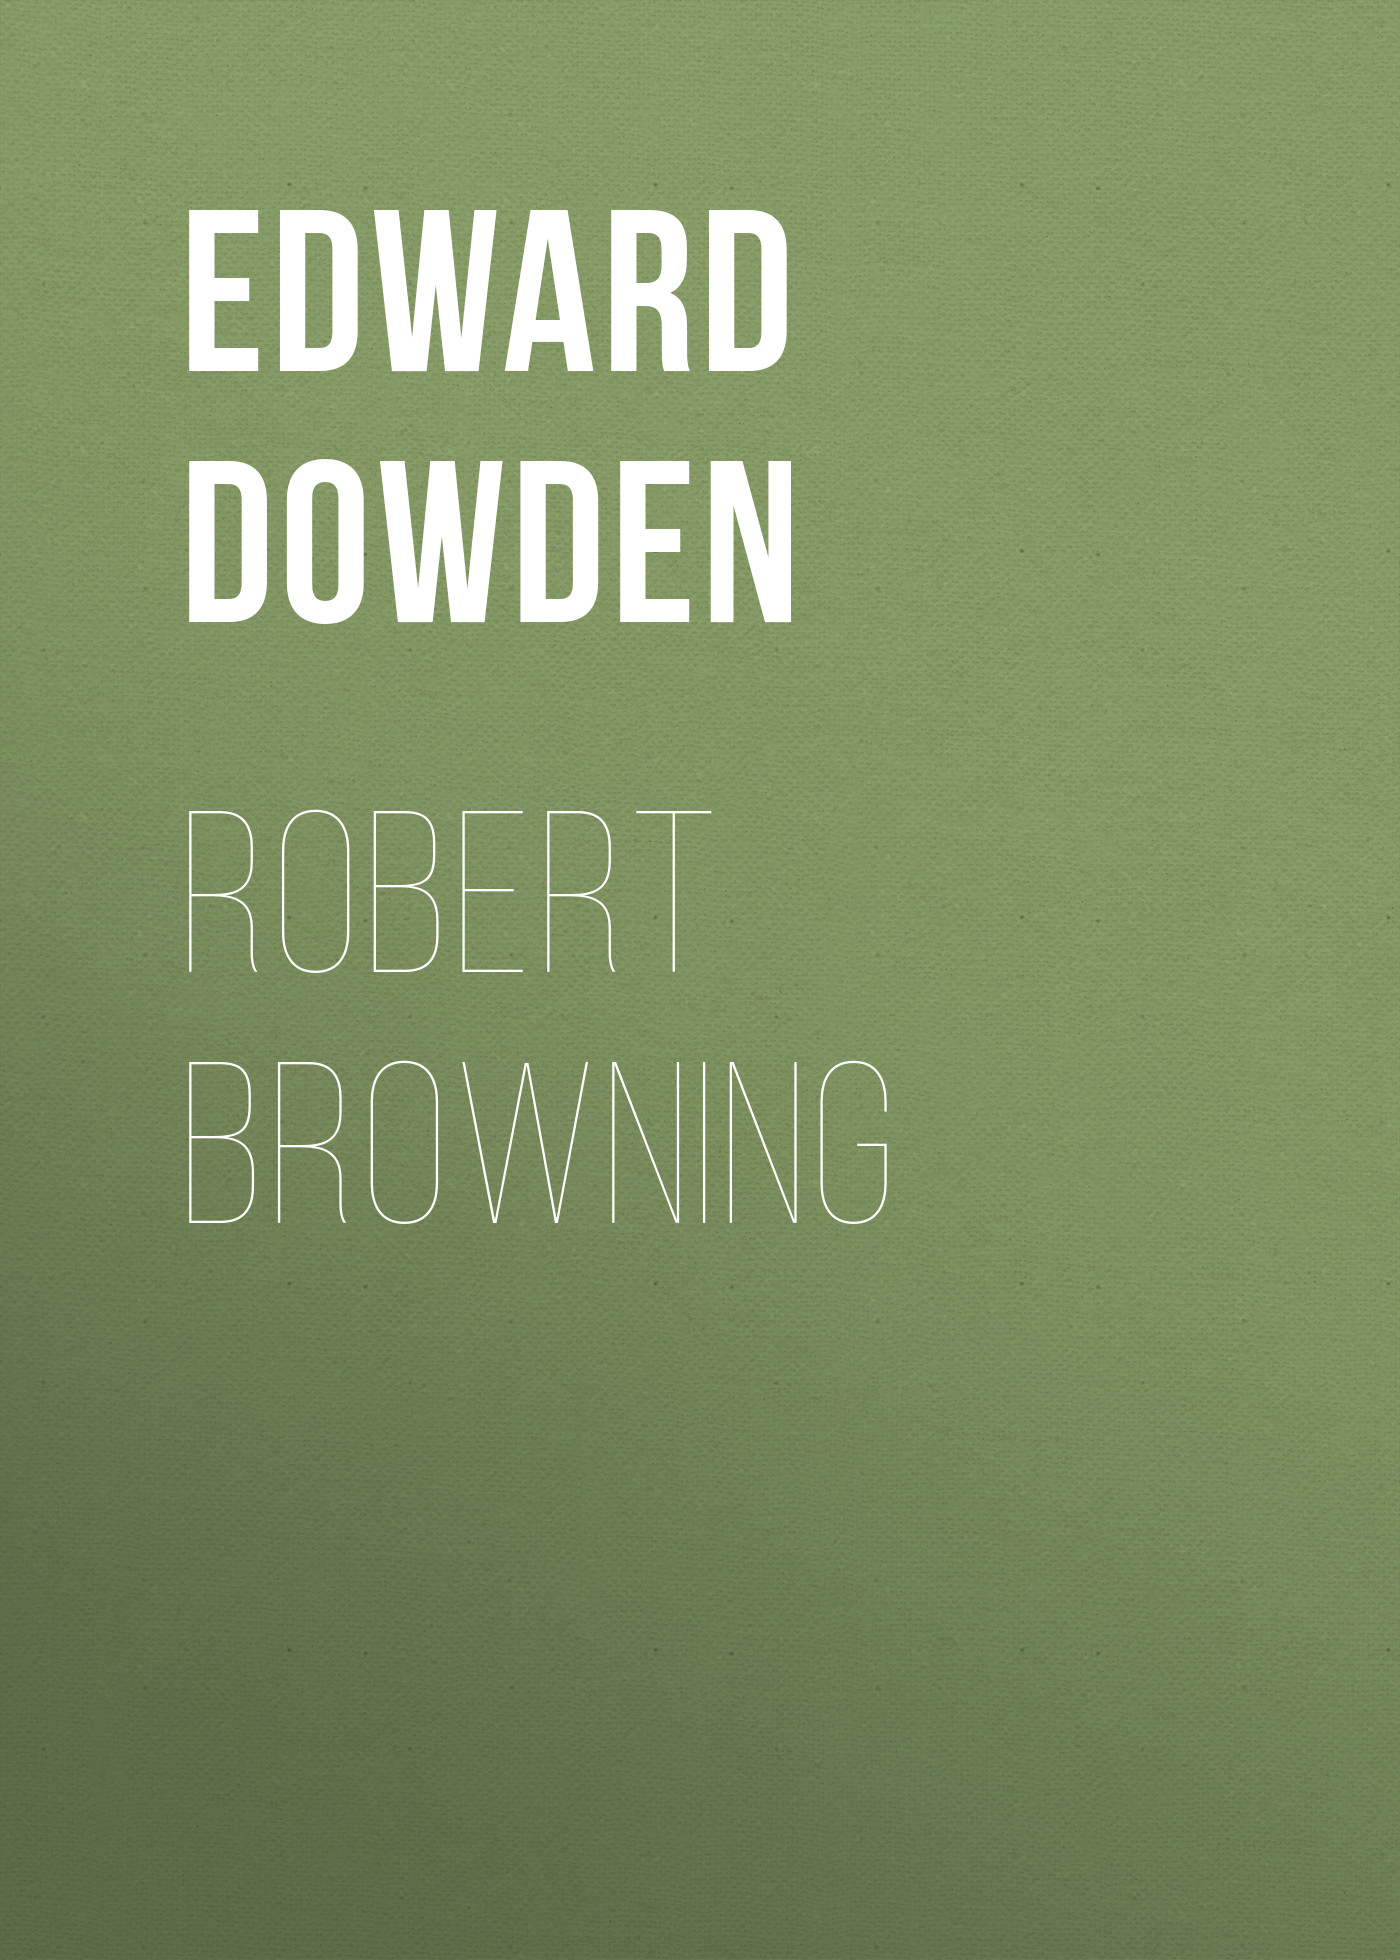 лучшая цена Edward Dowden Robert Browning